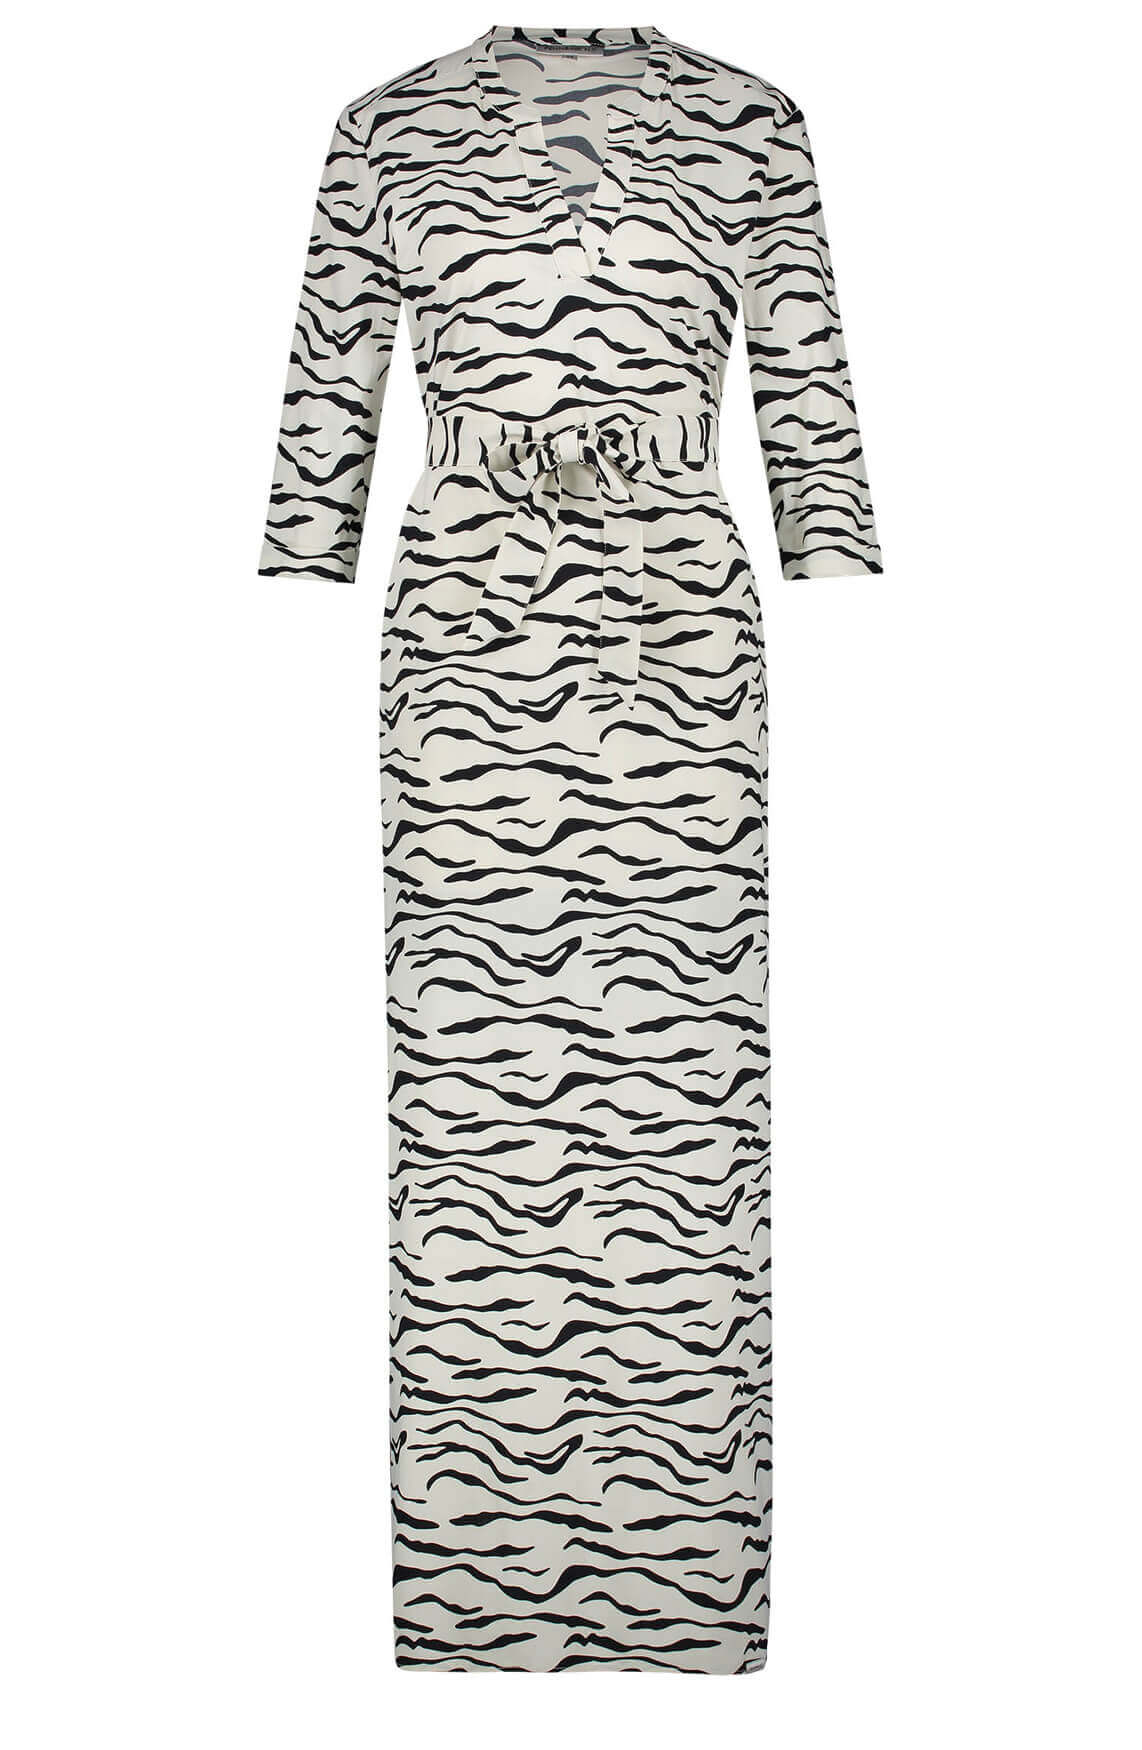 Penn & Ink Dames Jurk met zebraprint wit